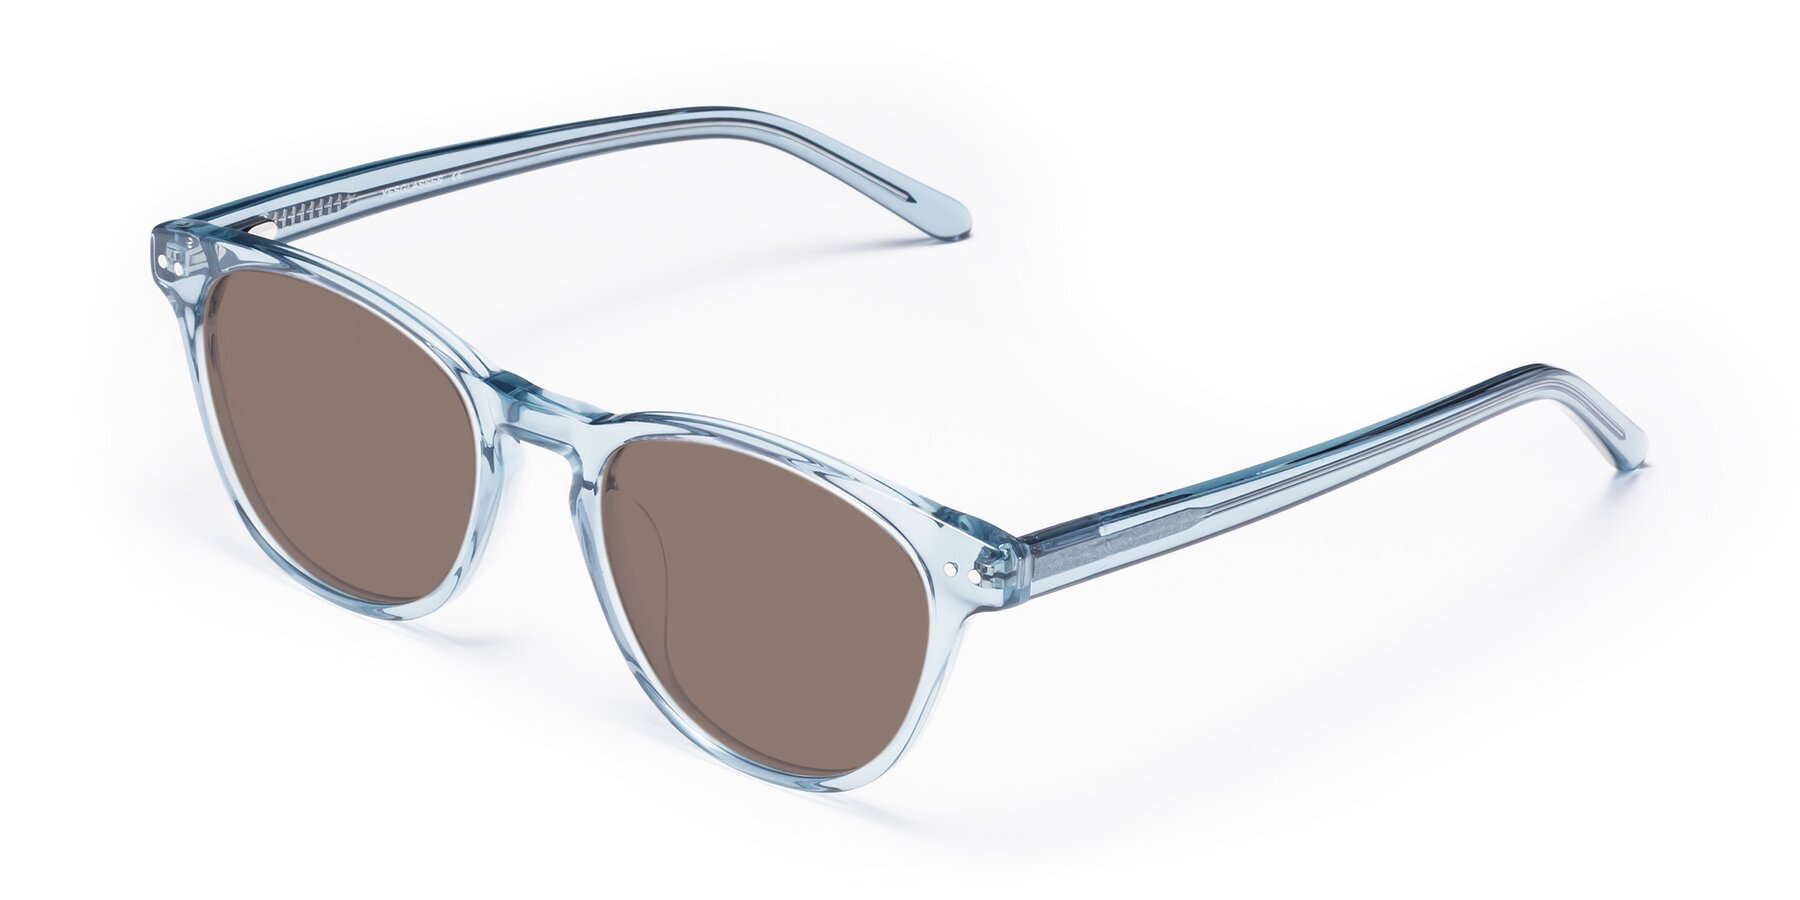 Angle of Blaze in Light Blue with Medium Brown Tinted Lenses